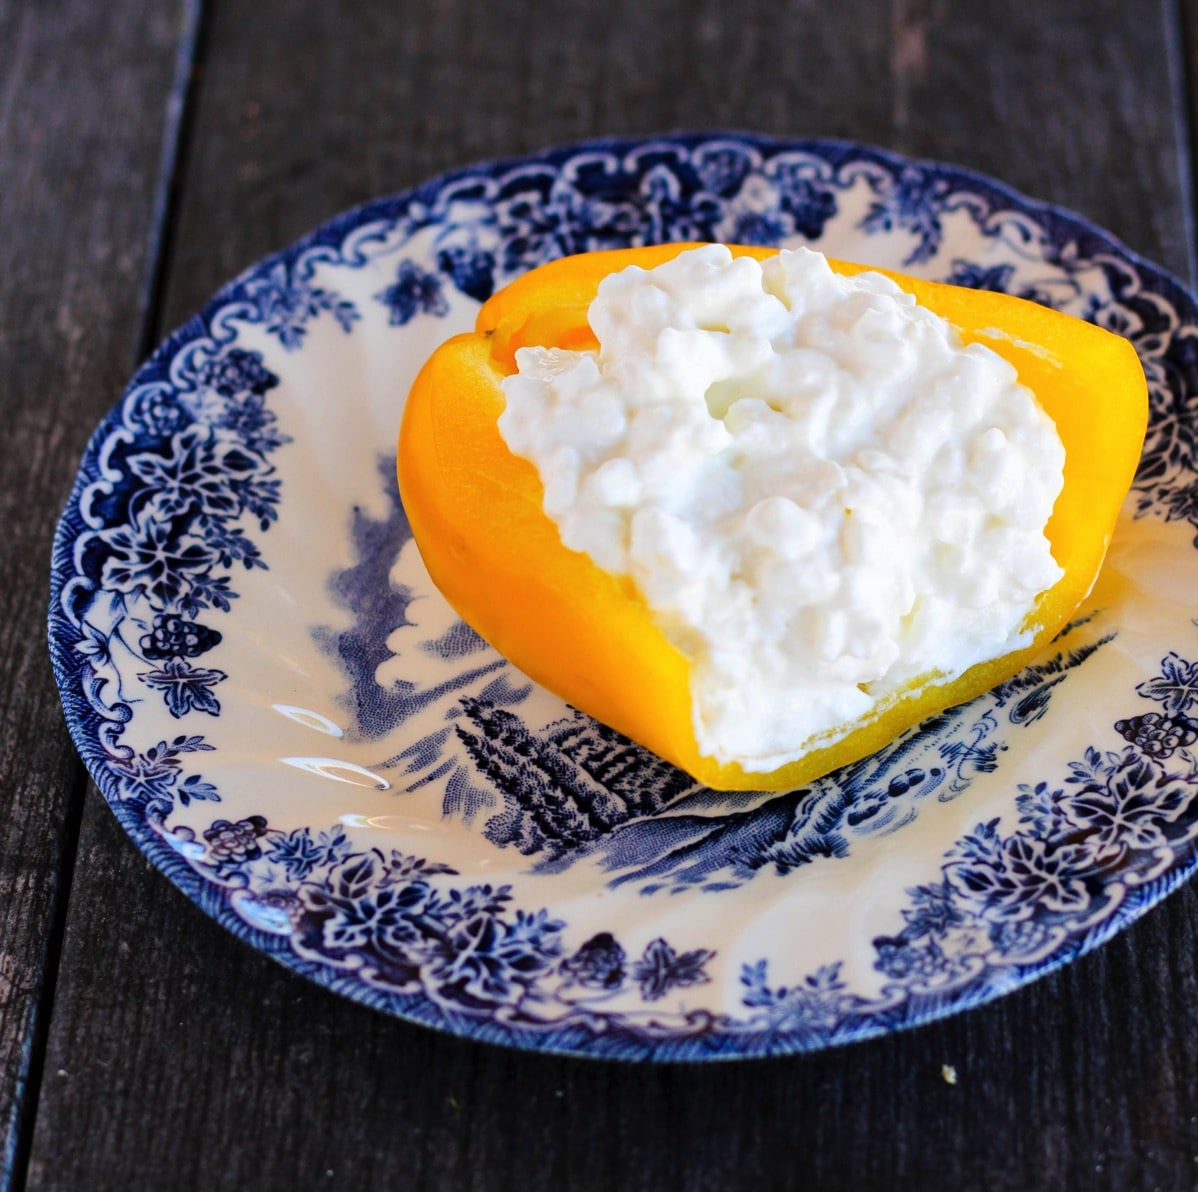 160217-bell-pepper-cottage-cheese.jpg